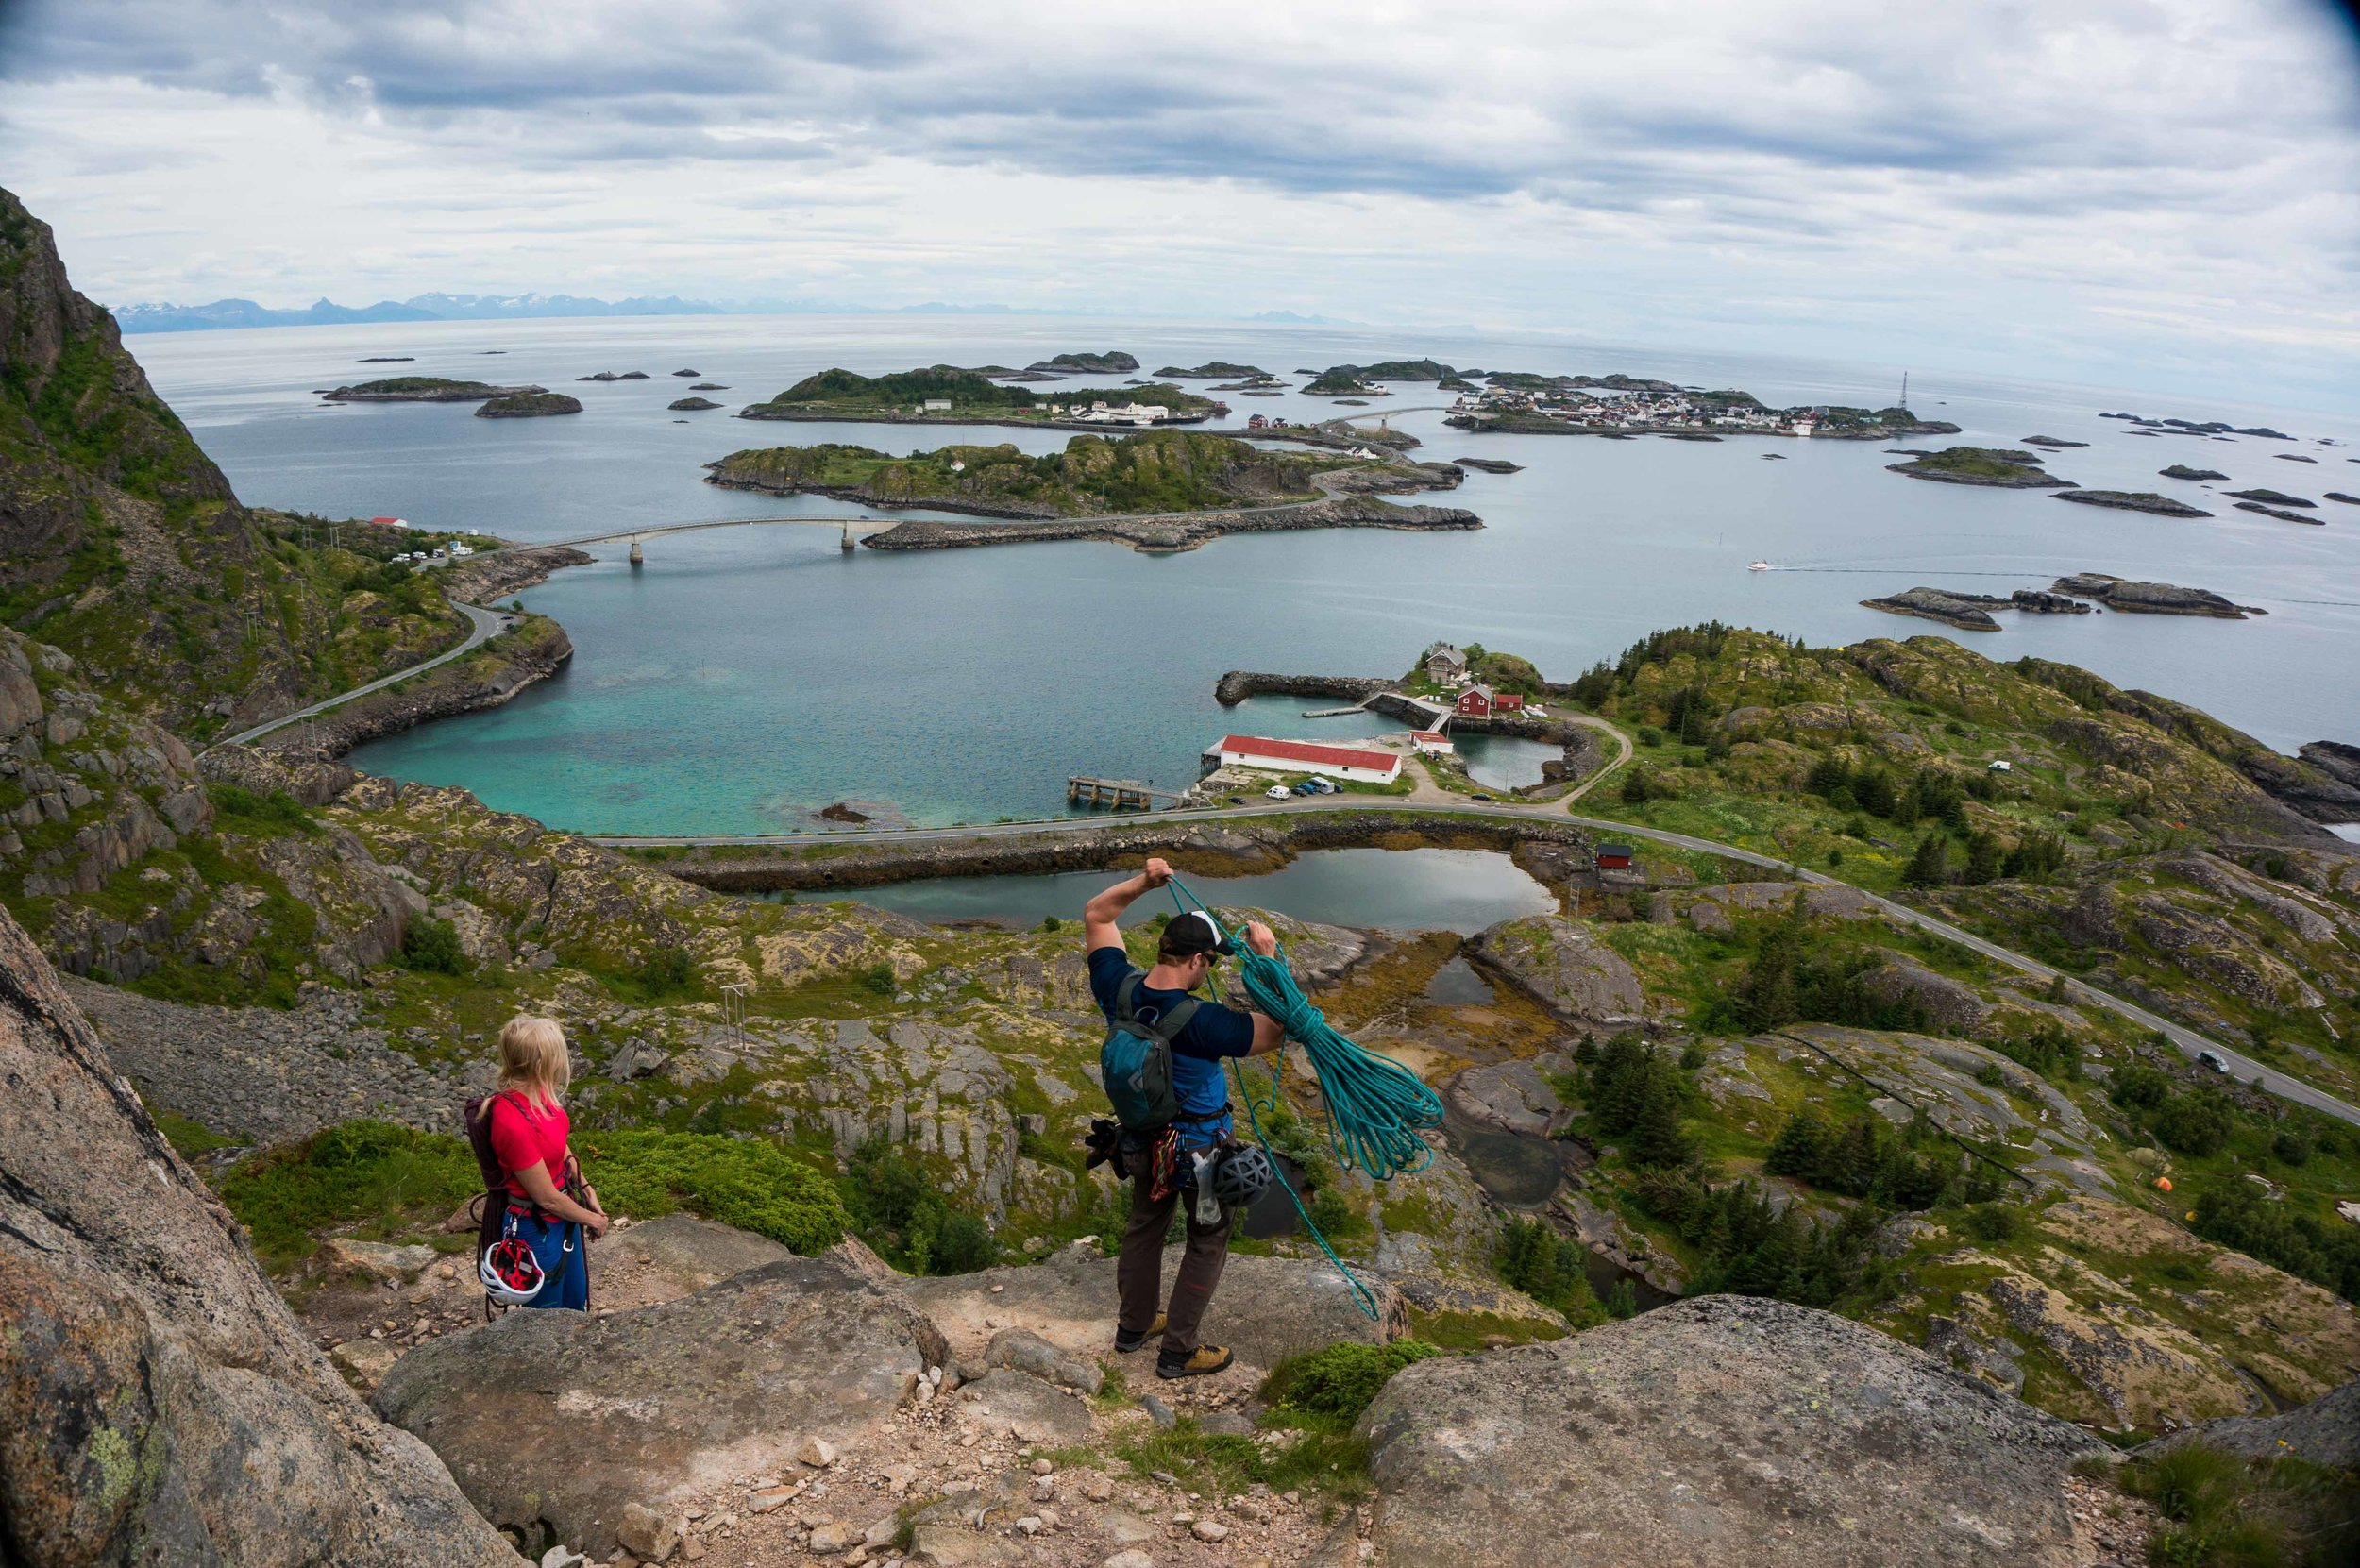 The top of a rock climb near Heningsvaer